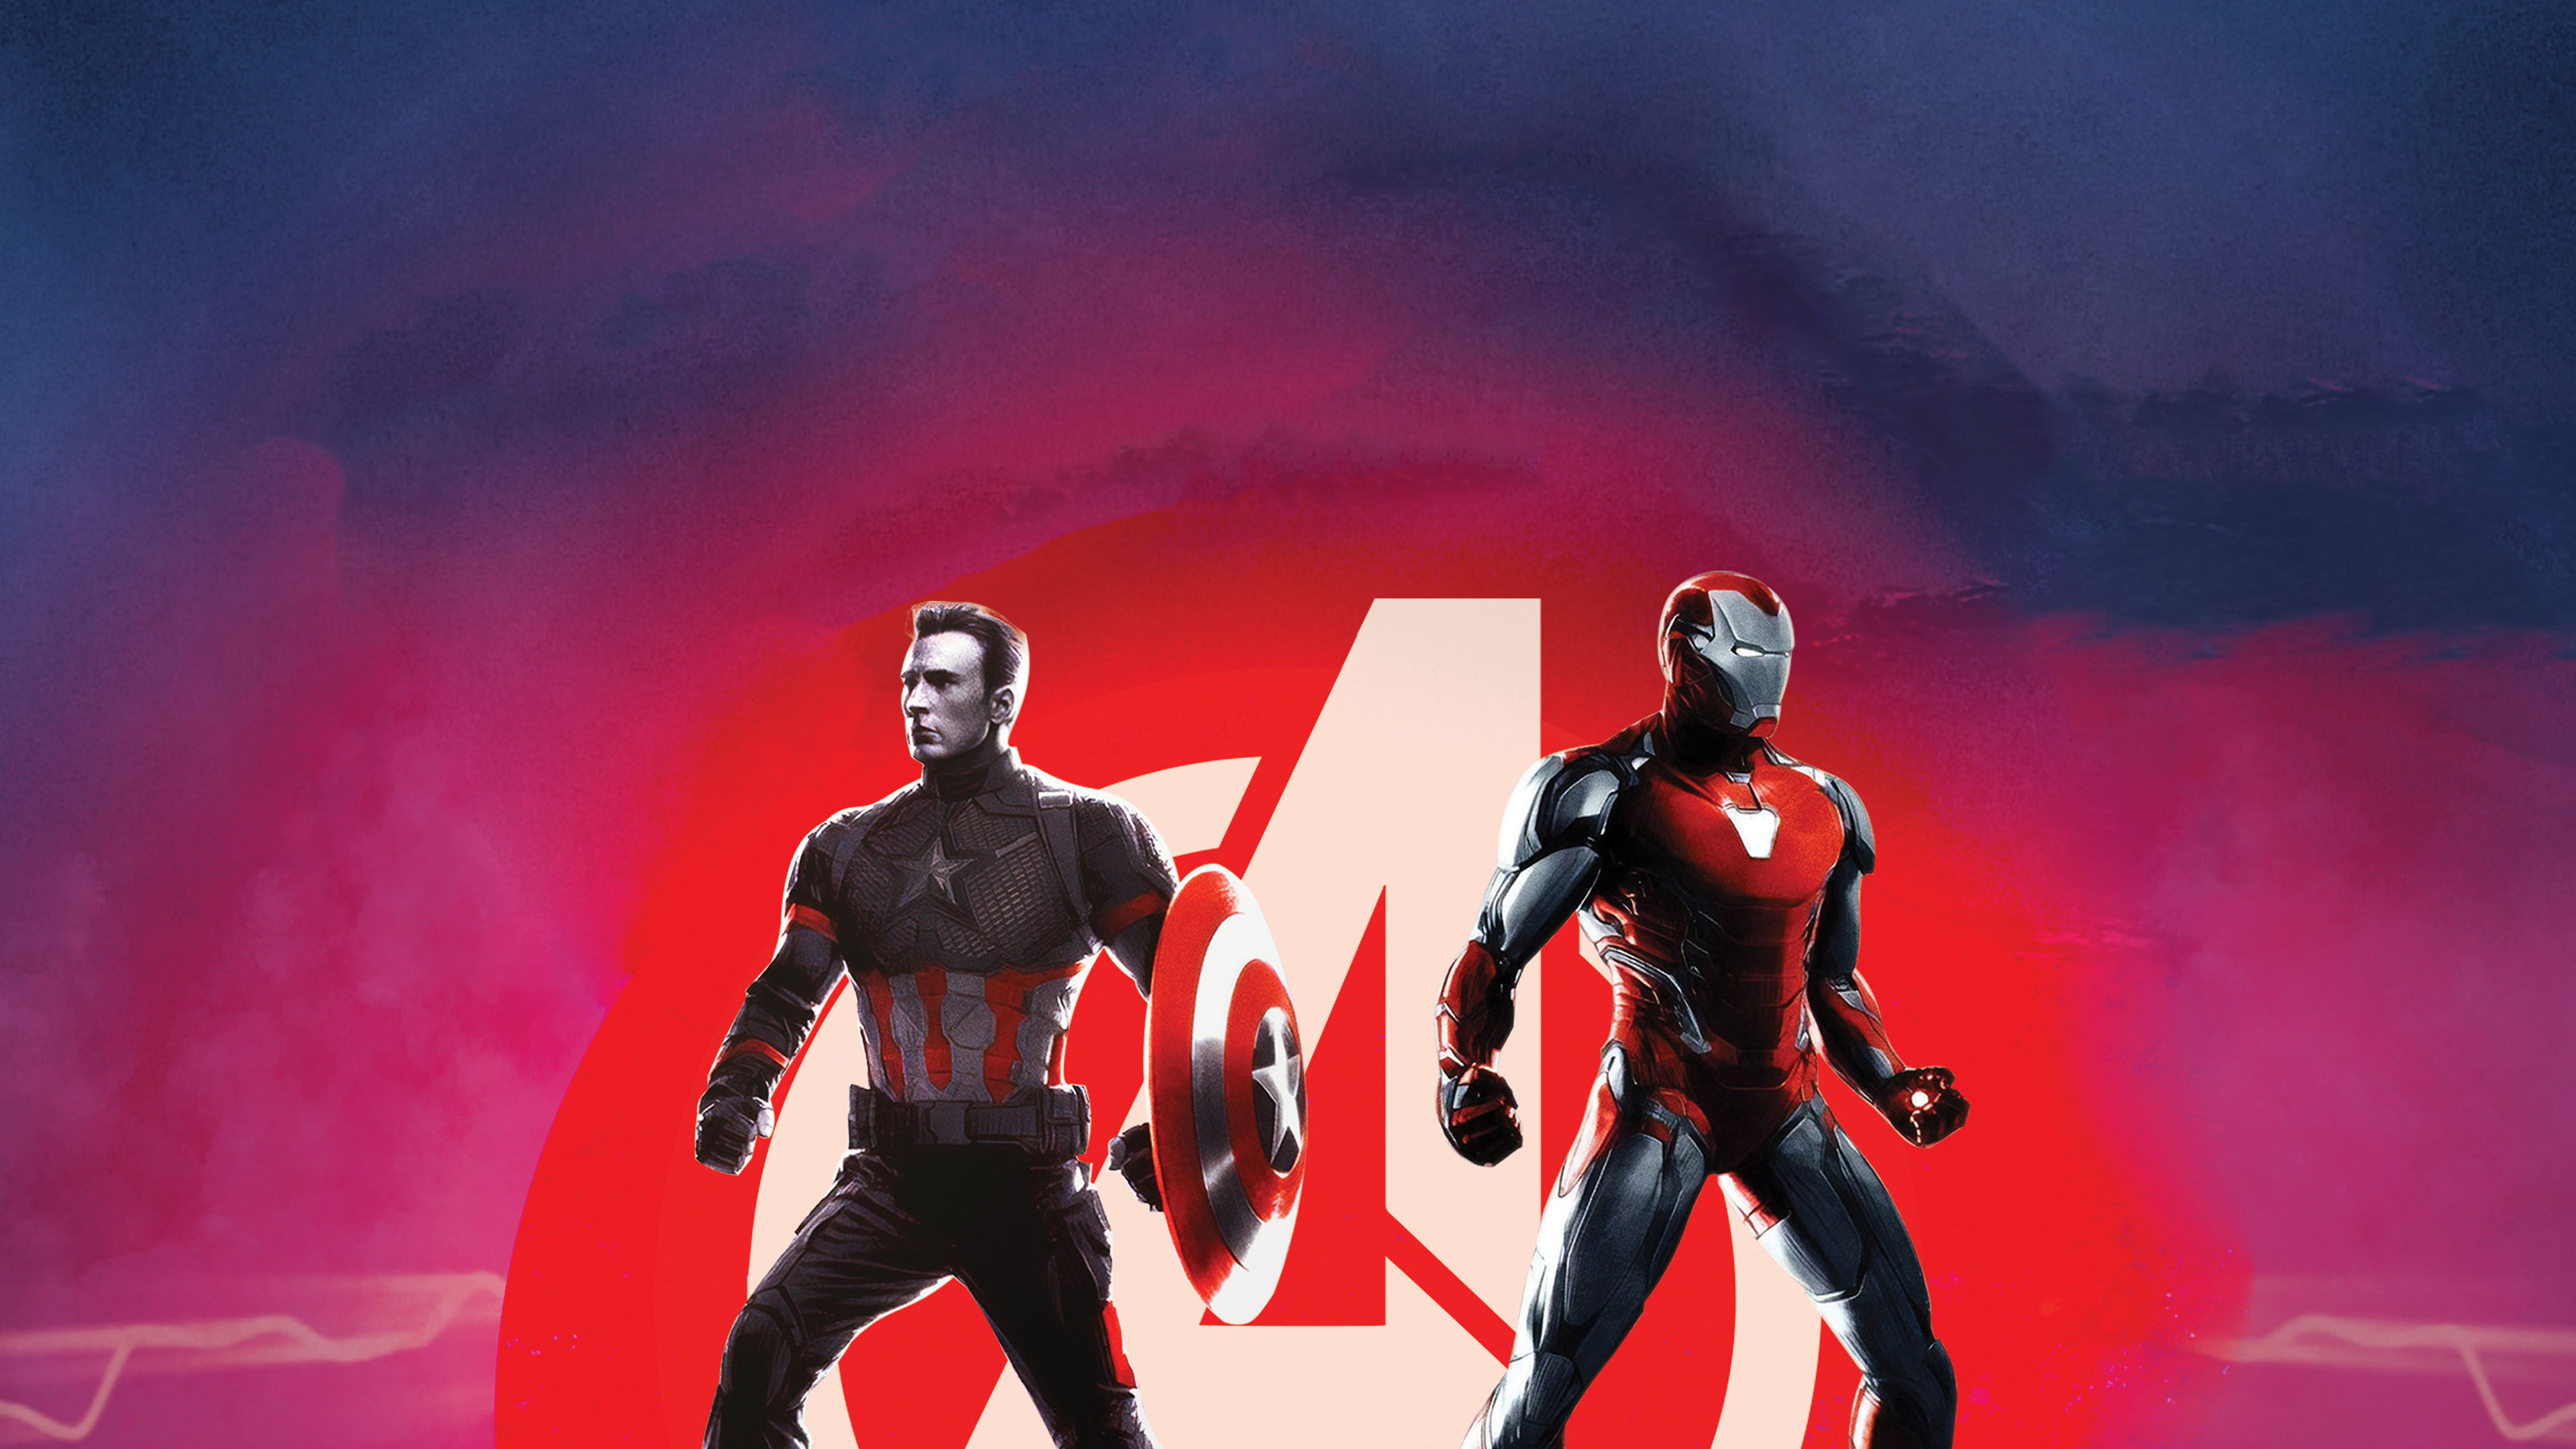 3840x2160 Captain America And Iron Man Avengers Endgame 4k